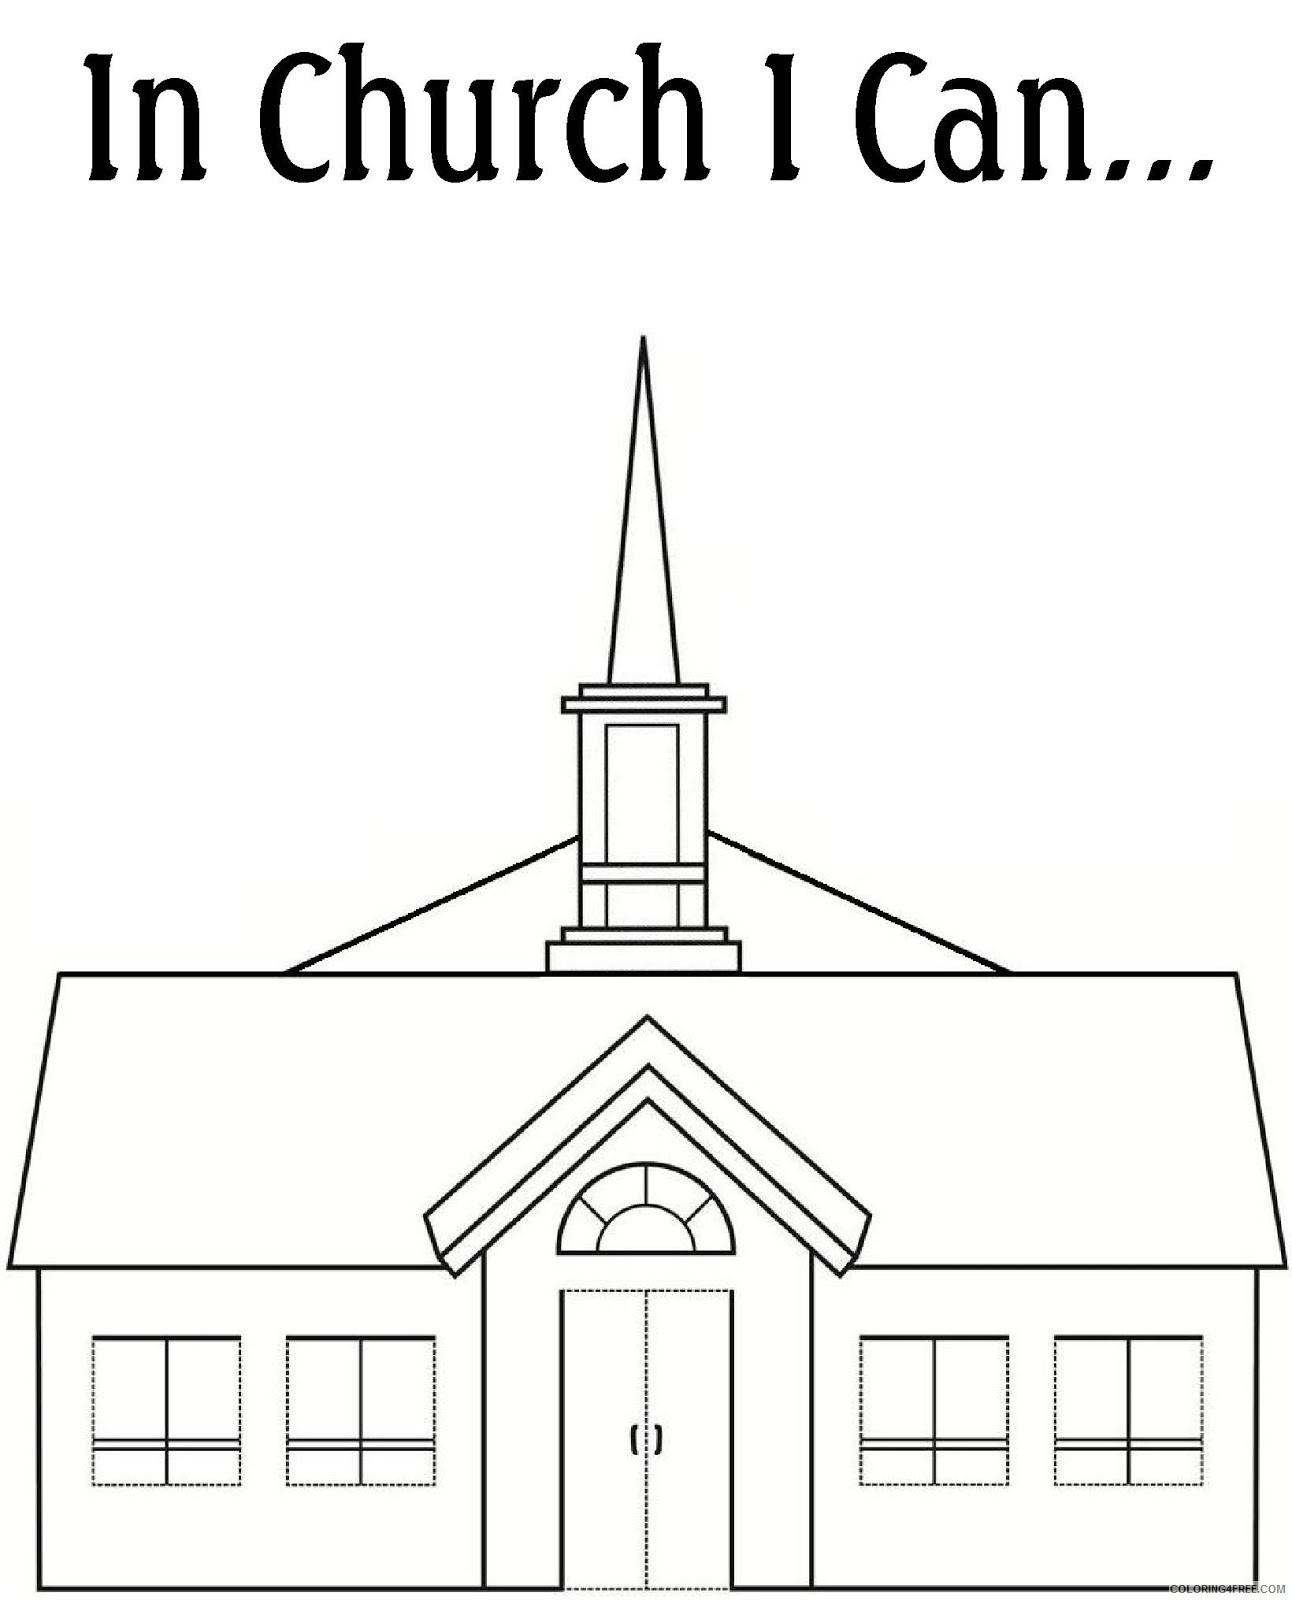 Printable Church Coloring Pages Free Coloring4free - Coloring4Free.com